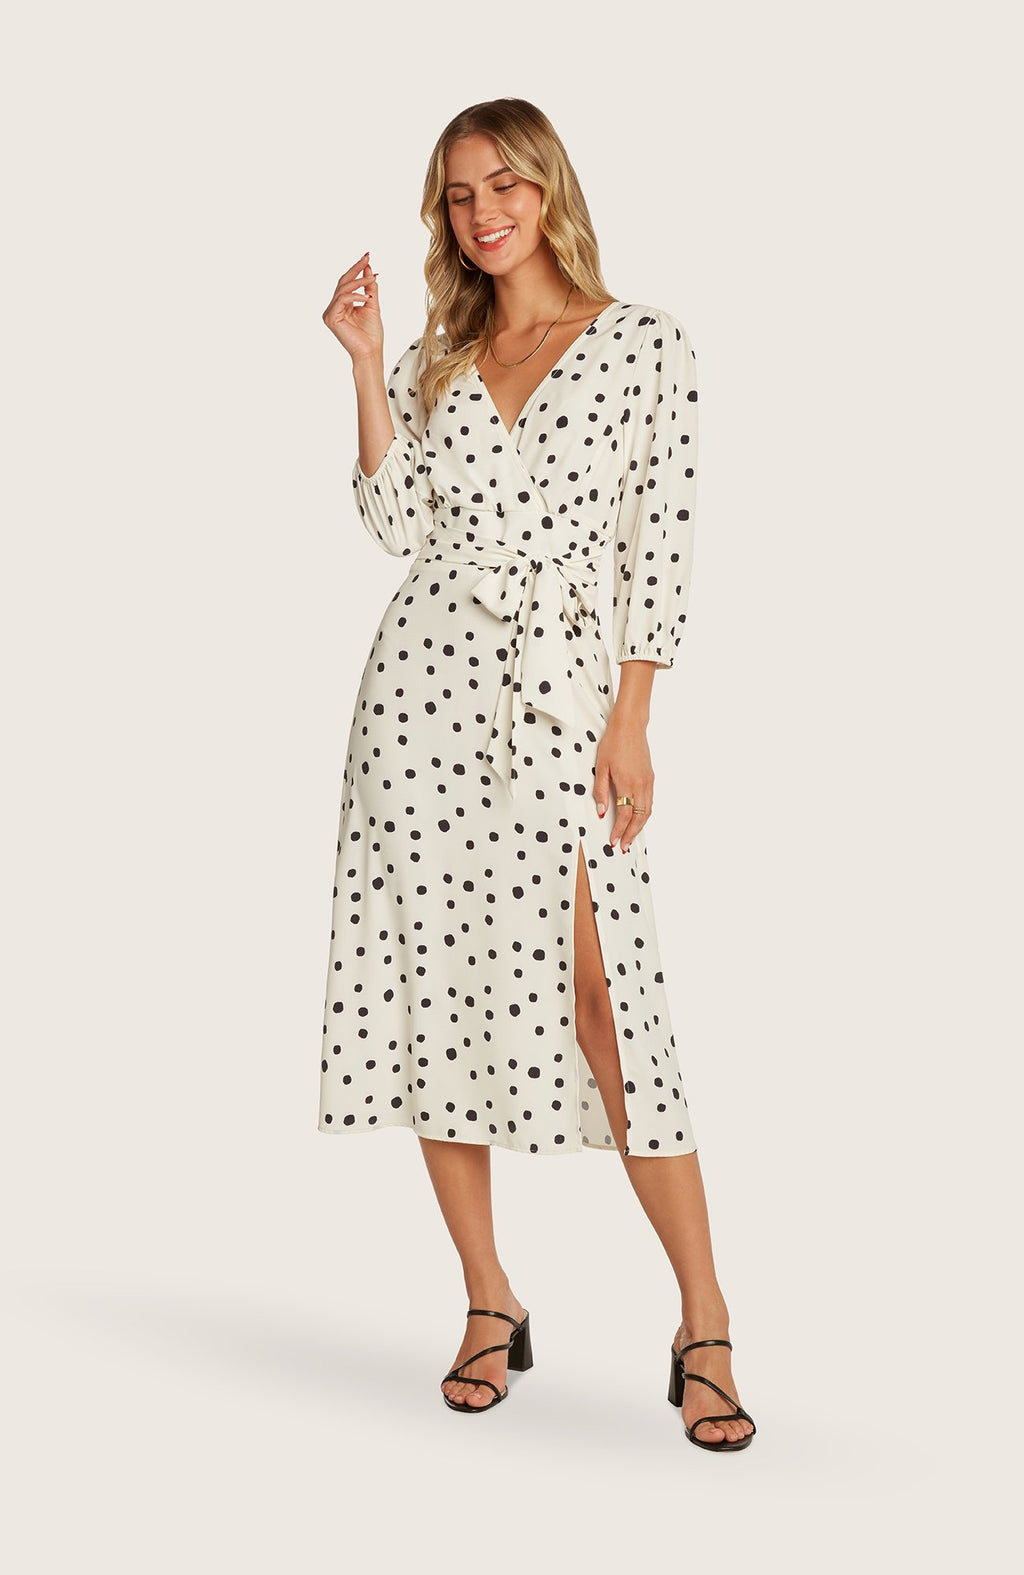 willow-dede-dress-polkadot-midi-length-highslit-wrap-style-vneck-long-sleeve-black-white